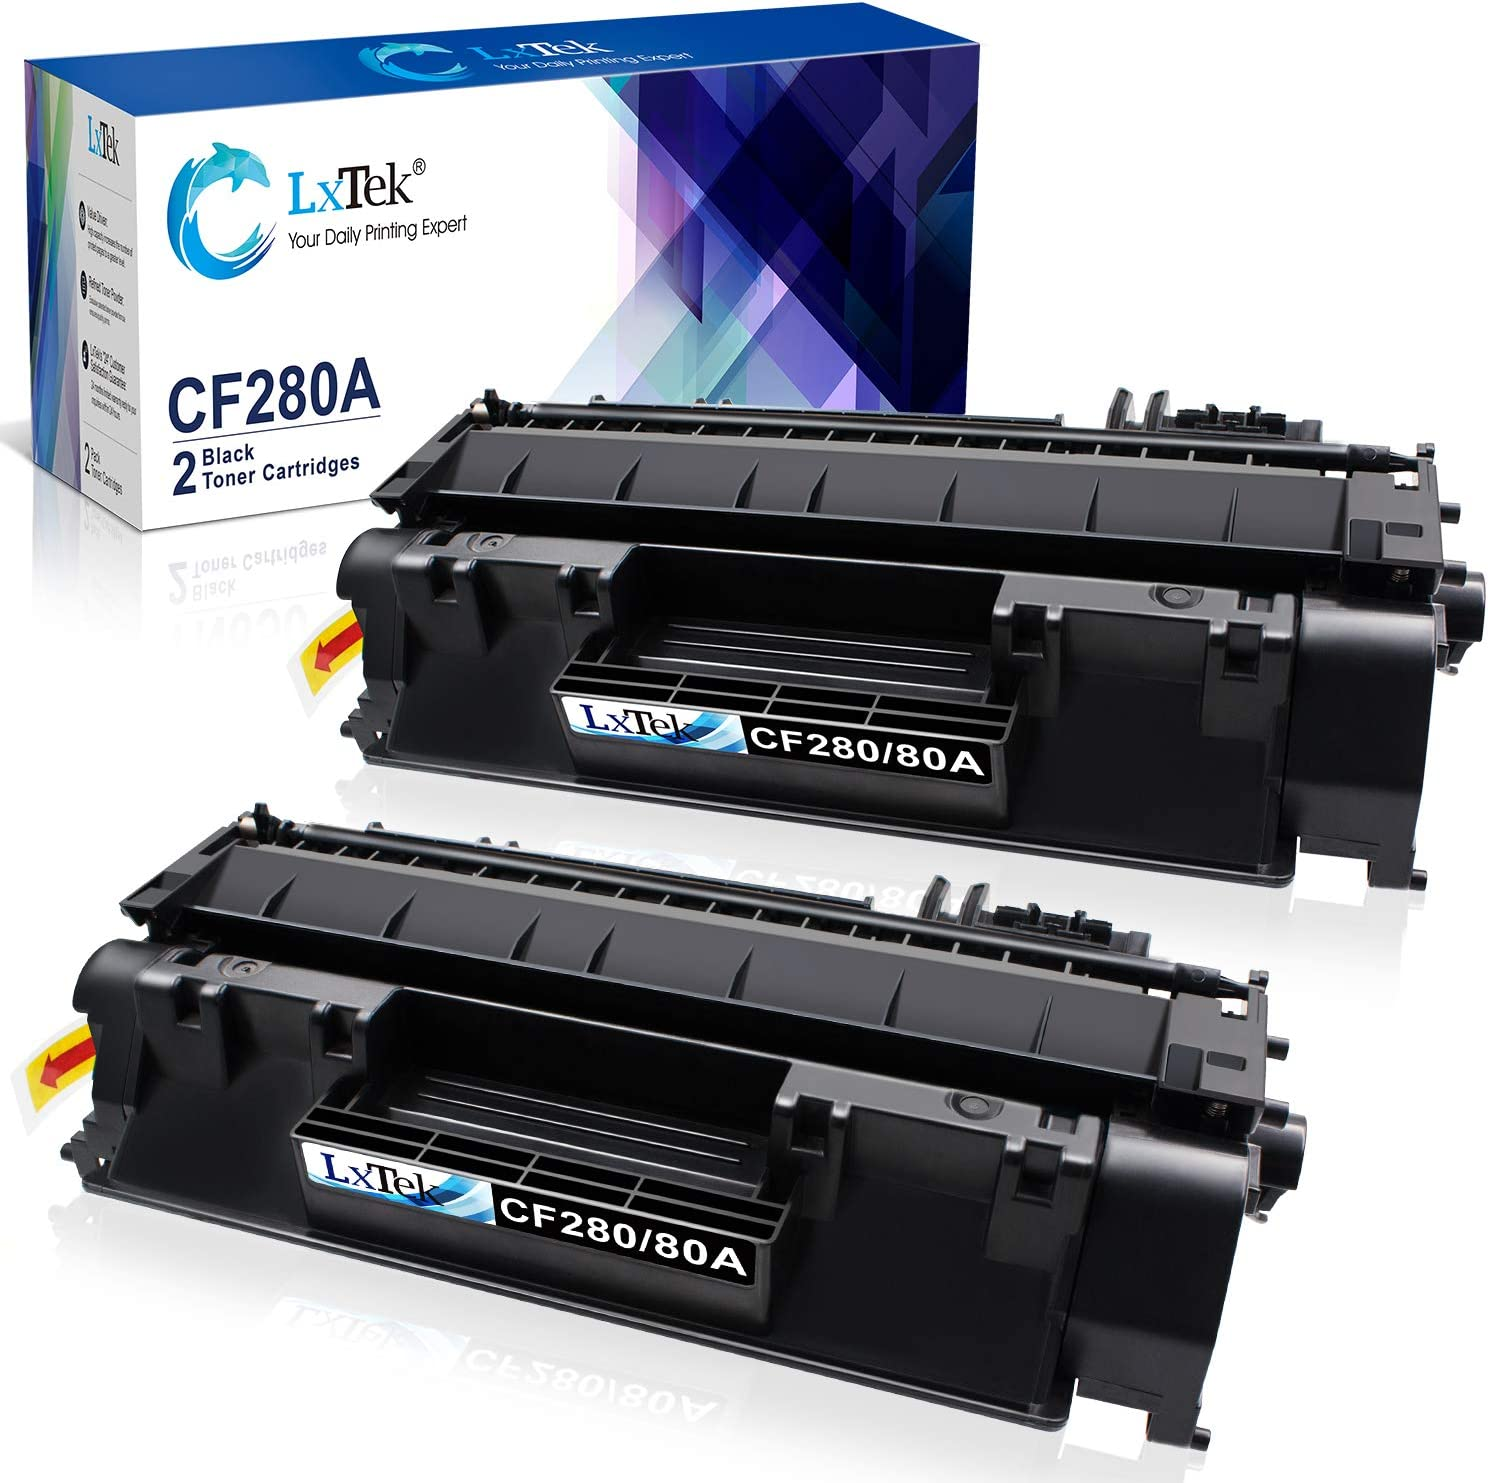 LxTek Compatible Toner Cartridge Replacement for HP 80A CF280A 80X CF280X 05A CE505A to use with Laserjet Pro 400 M401dne M401dn M401dw M401n, Pro 400 MFP M425dn M425dw Printer (2 Black, High Yield)